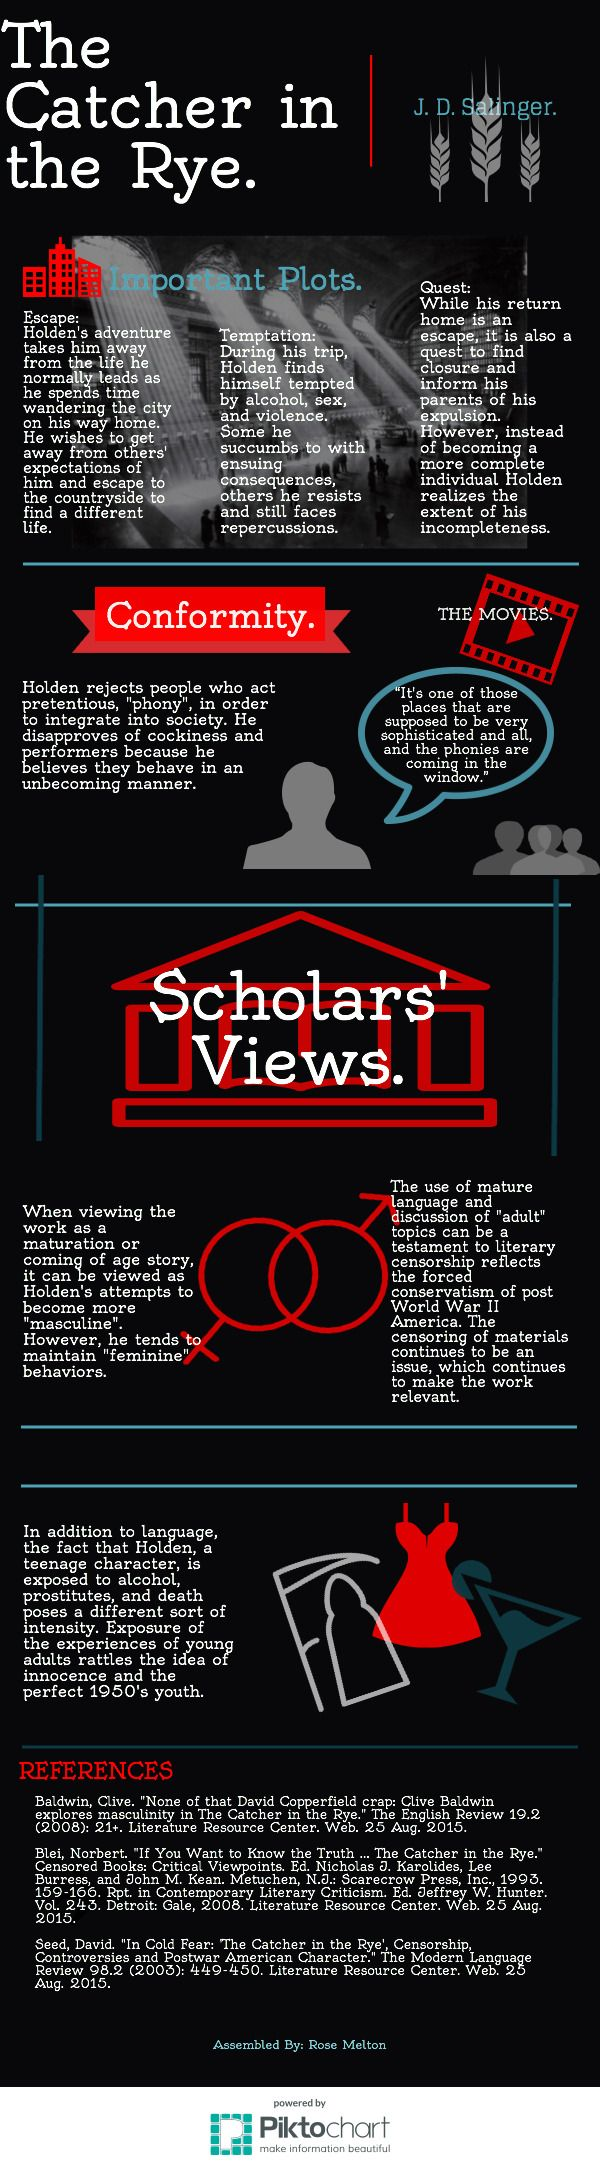 a study of the holden caulfield in the catcher in the rye by j d salinger What does jd salinger's famous novel the catcher in the rye say about the state of society read more questions for study and discussion here.